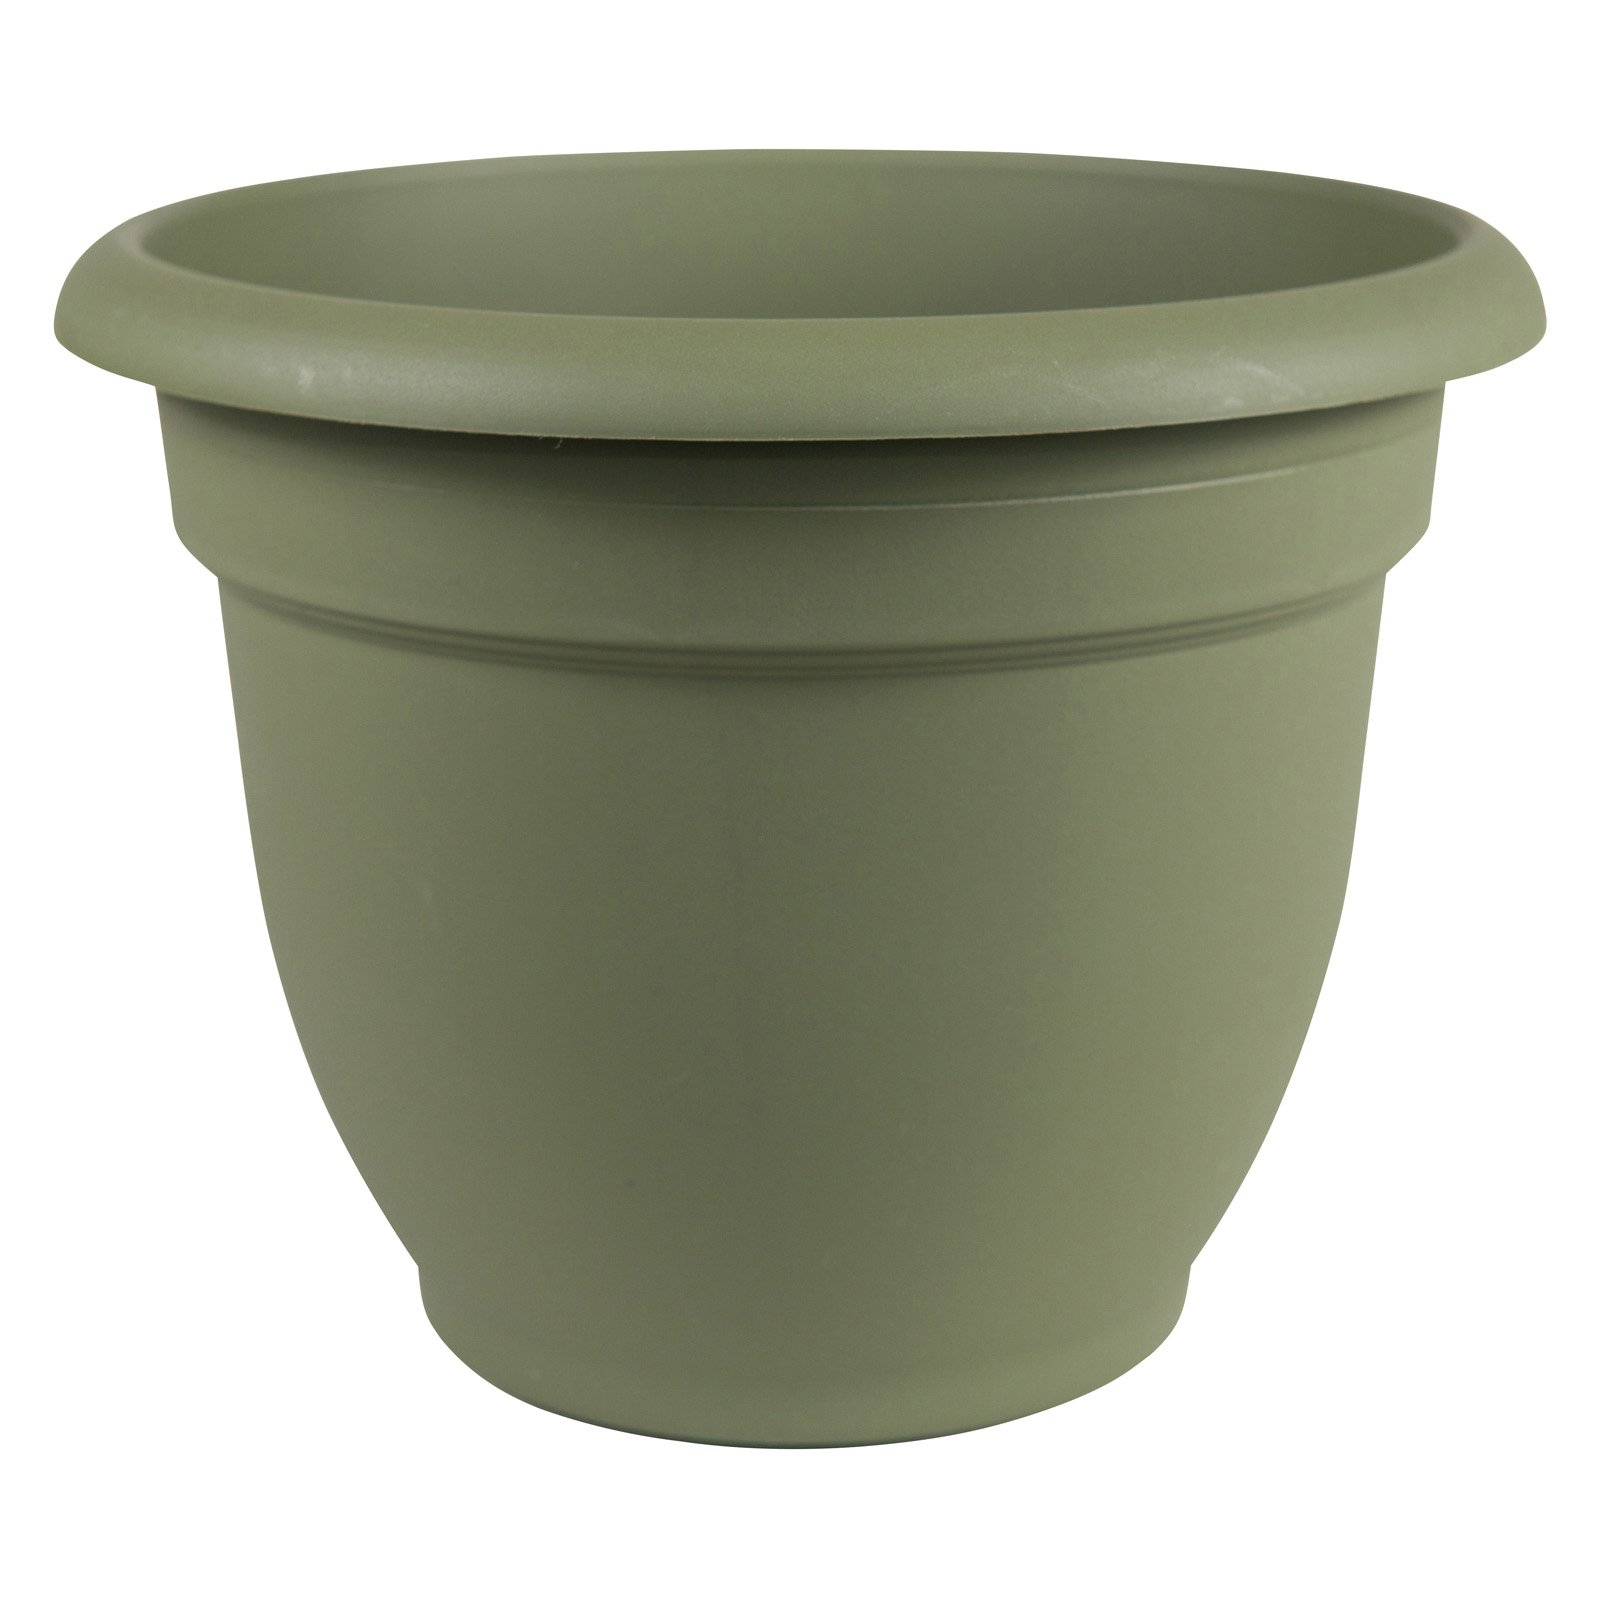 Bloem Ariana Plastic Round Self Watering Planter by